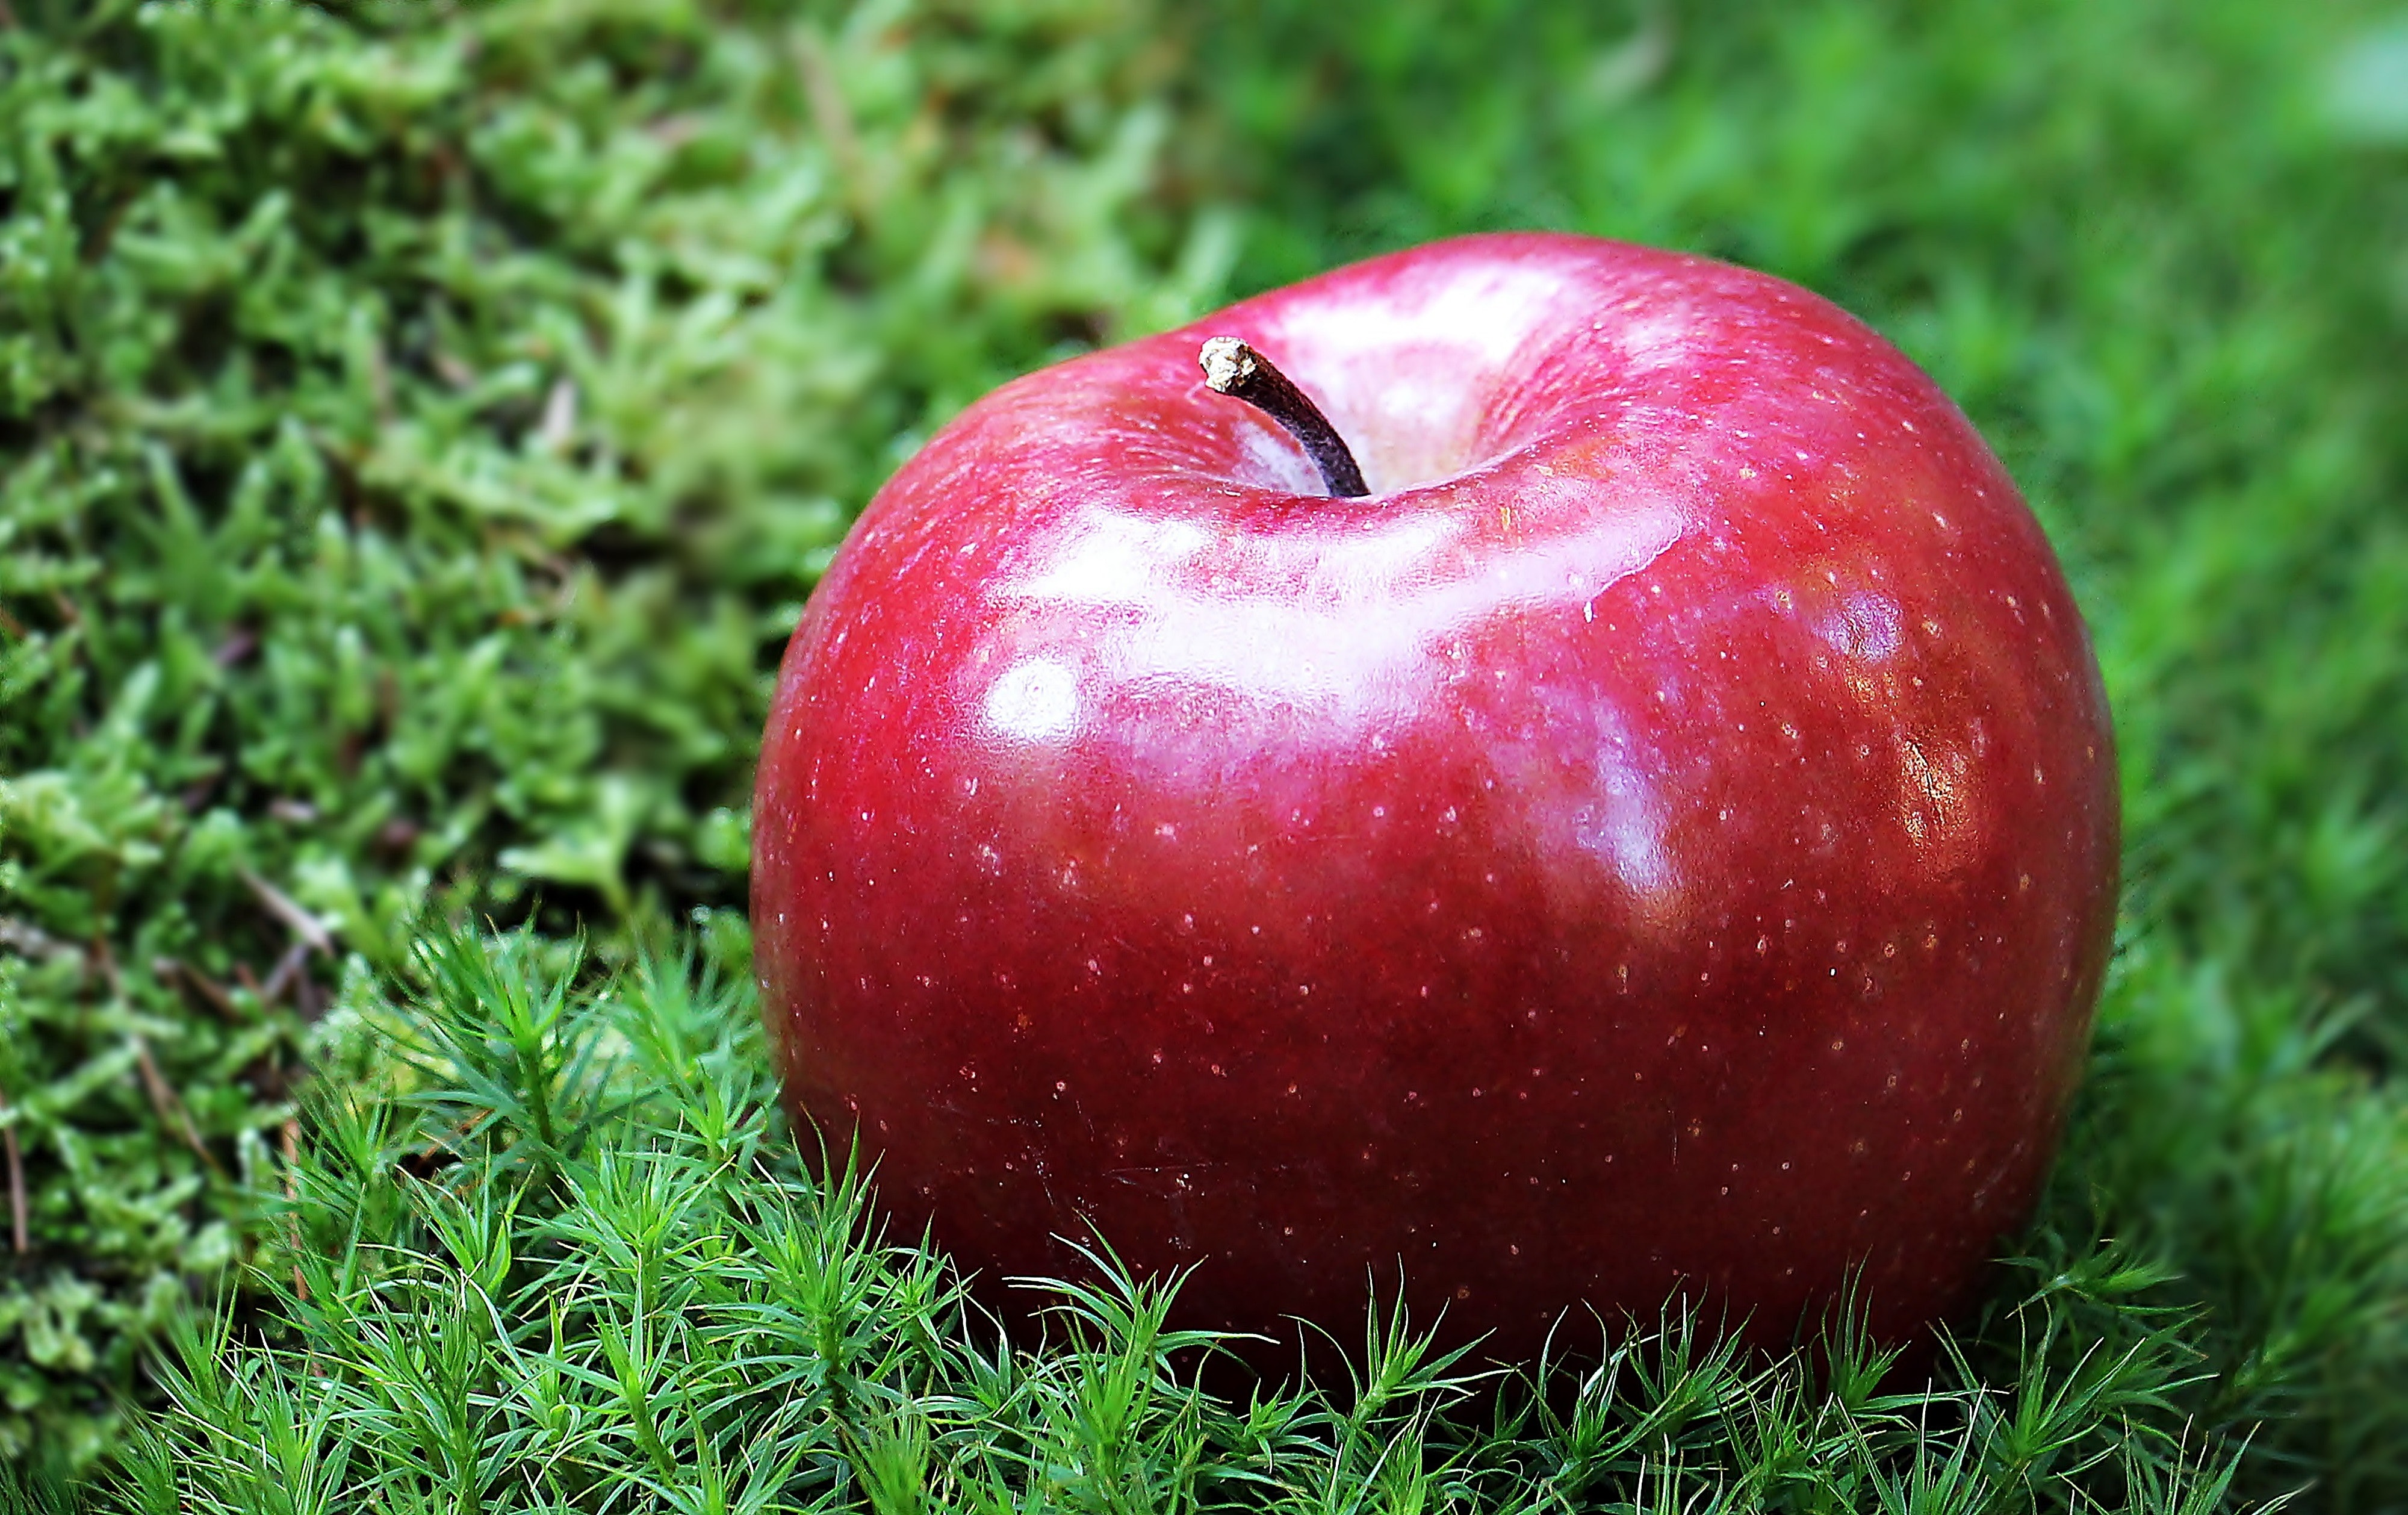 Red Apple Fruit Photography · Free Stock Photo